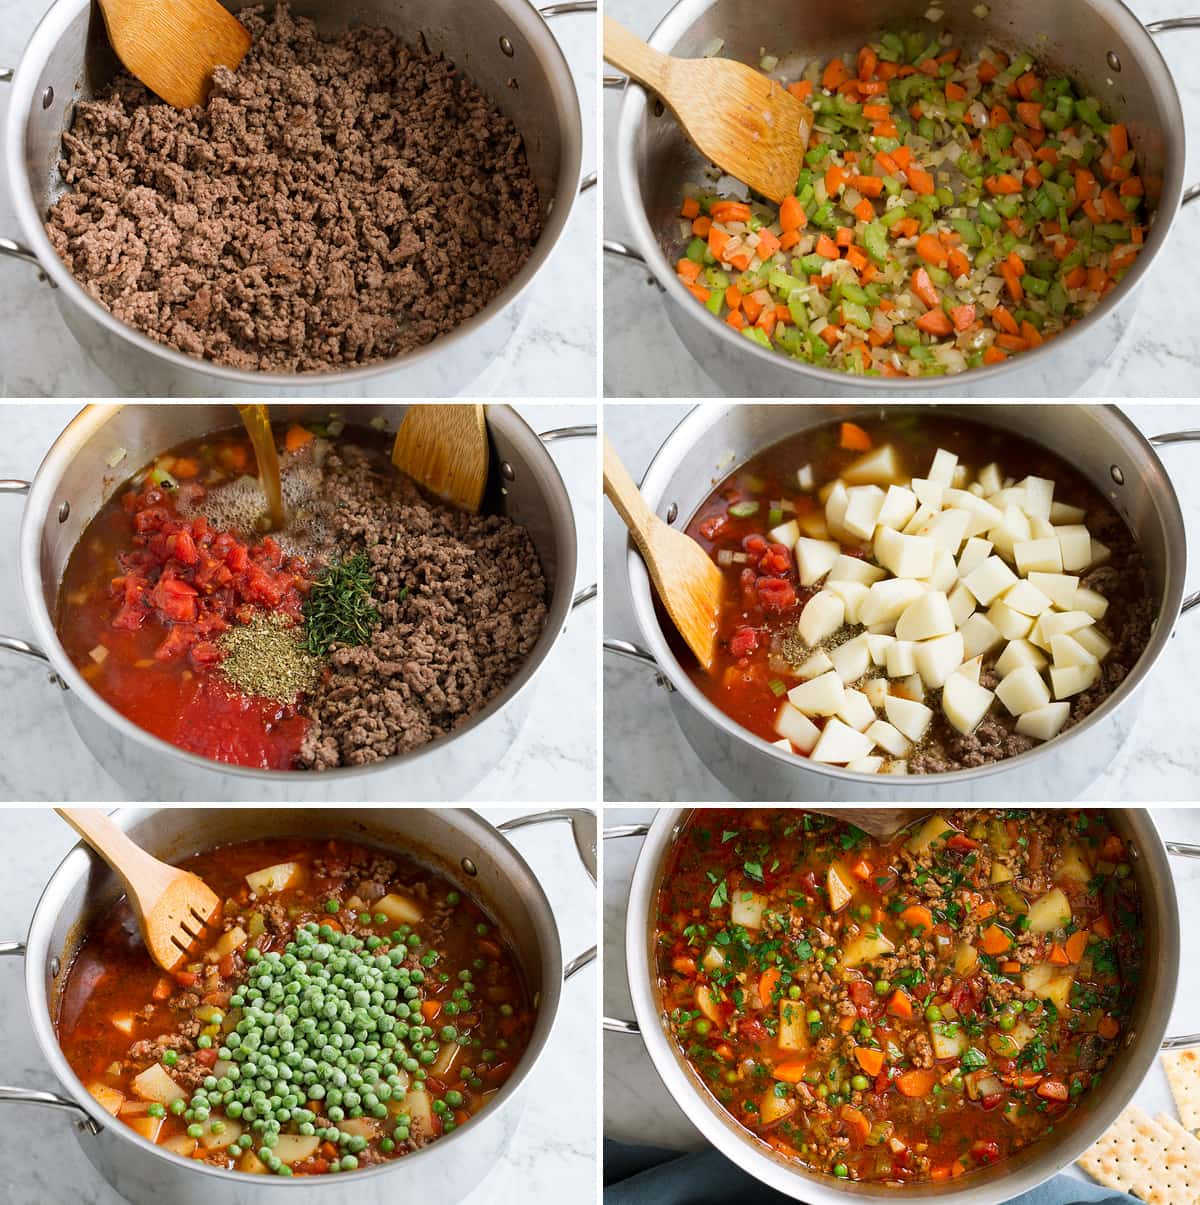 Steps showing how to make hamburger soup.